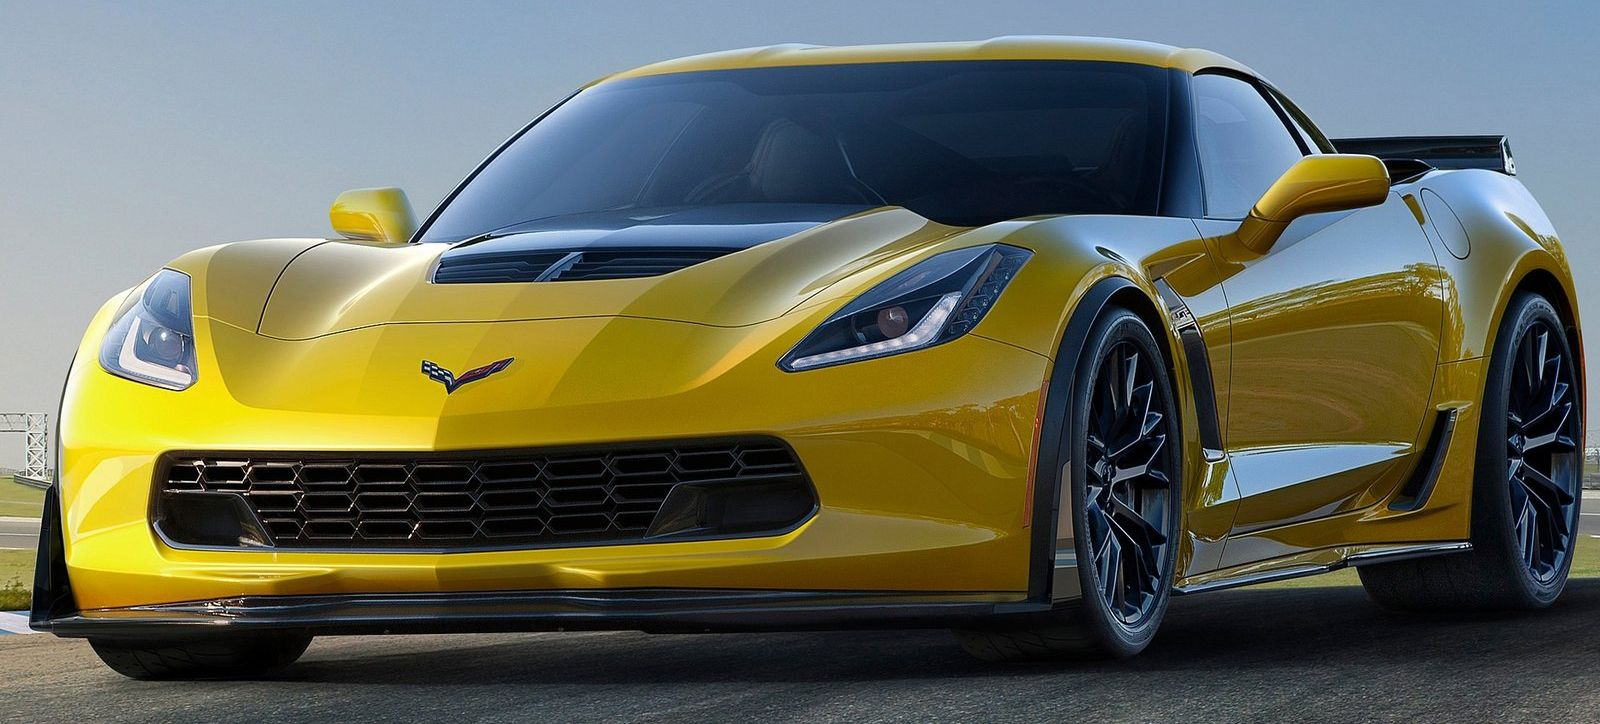 The 2015 Corvette Z06 Hits 0 60 In 2 95 Seconds Is Stupid Fast Chevrolet Corvette Chevrolet Corvette Stingray Chevrolet Corvette Z06